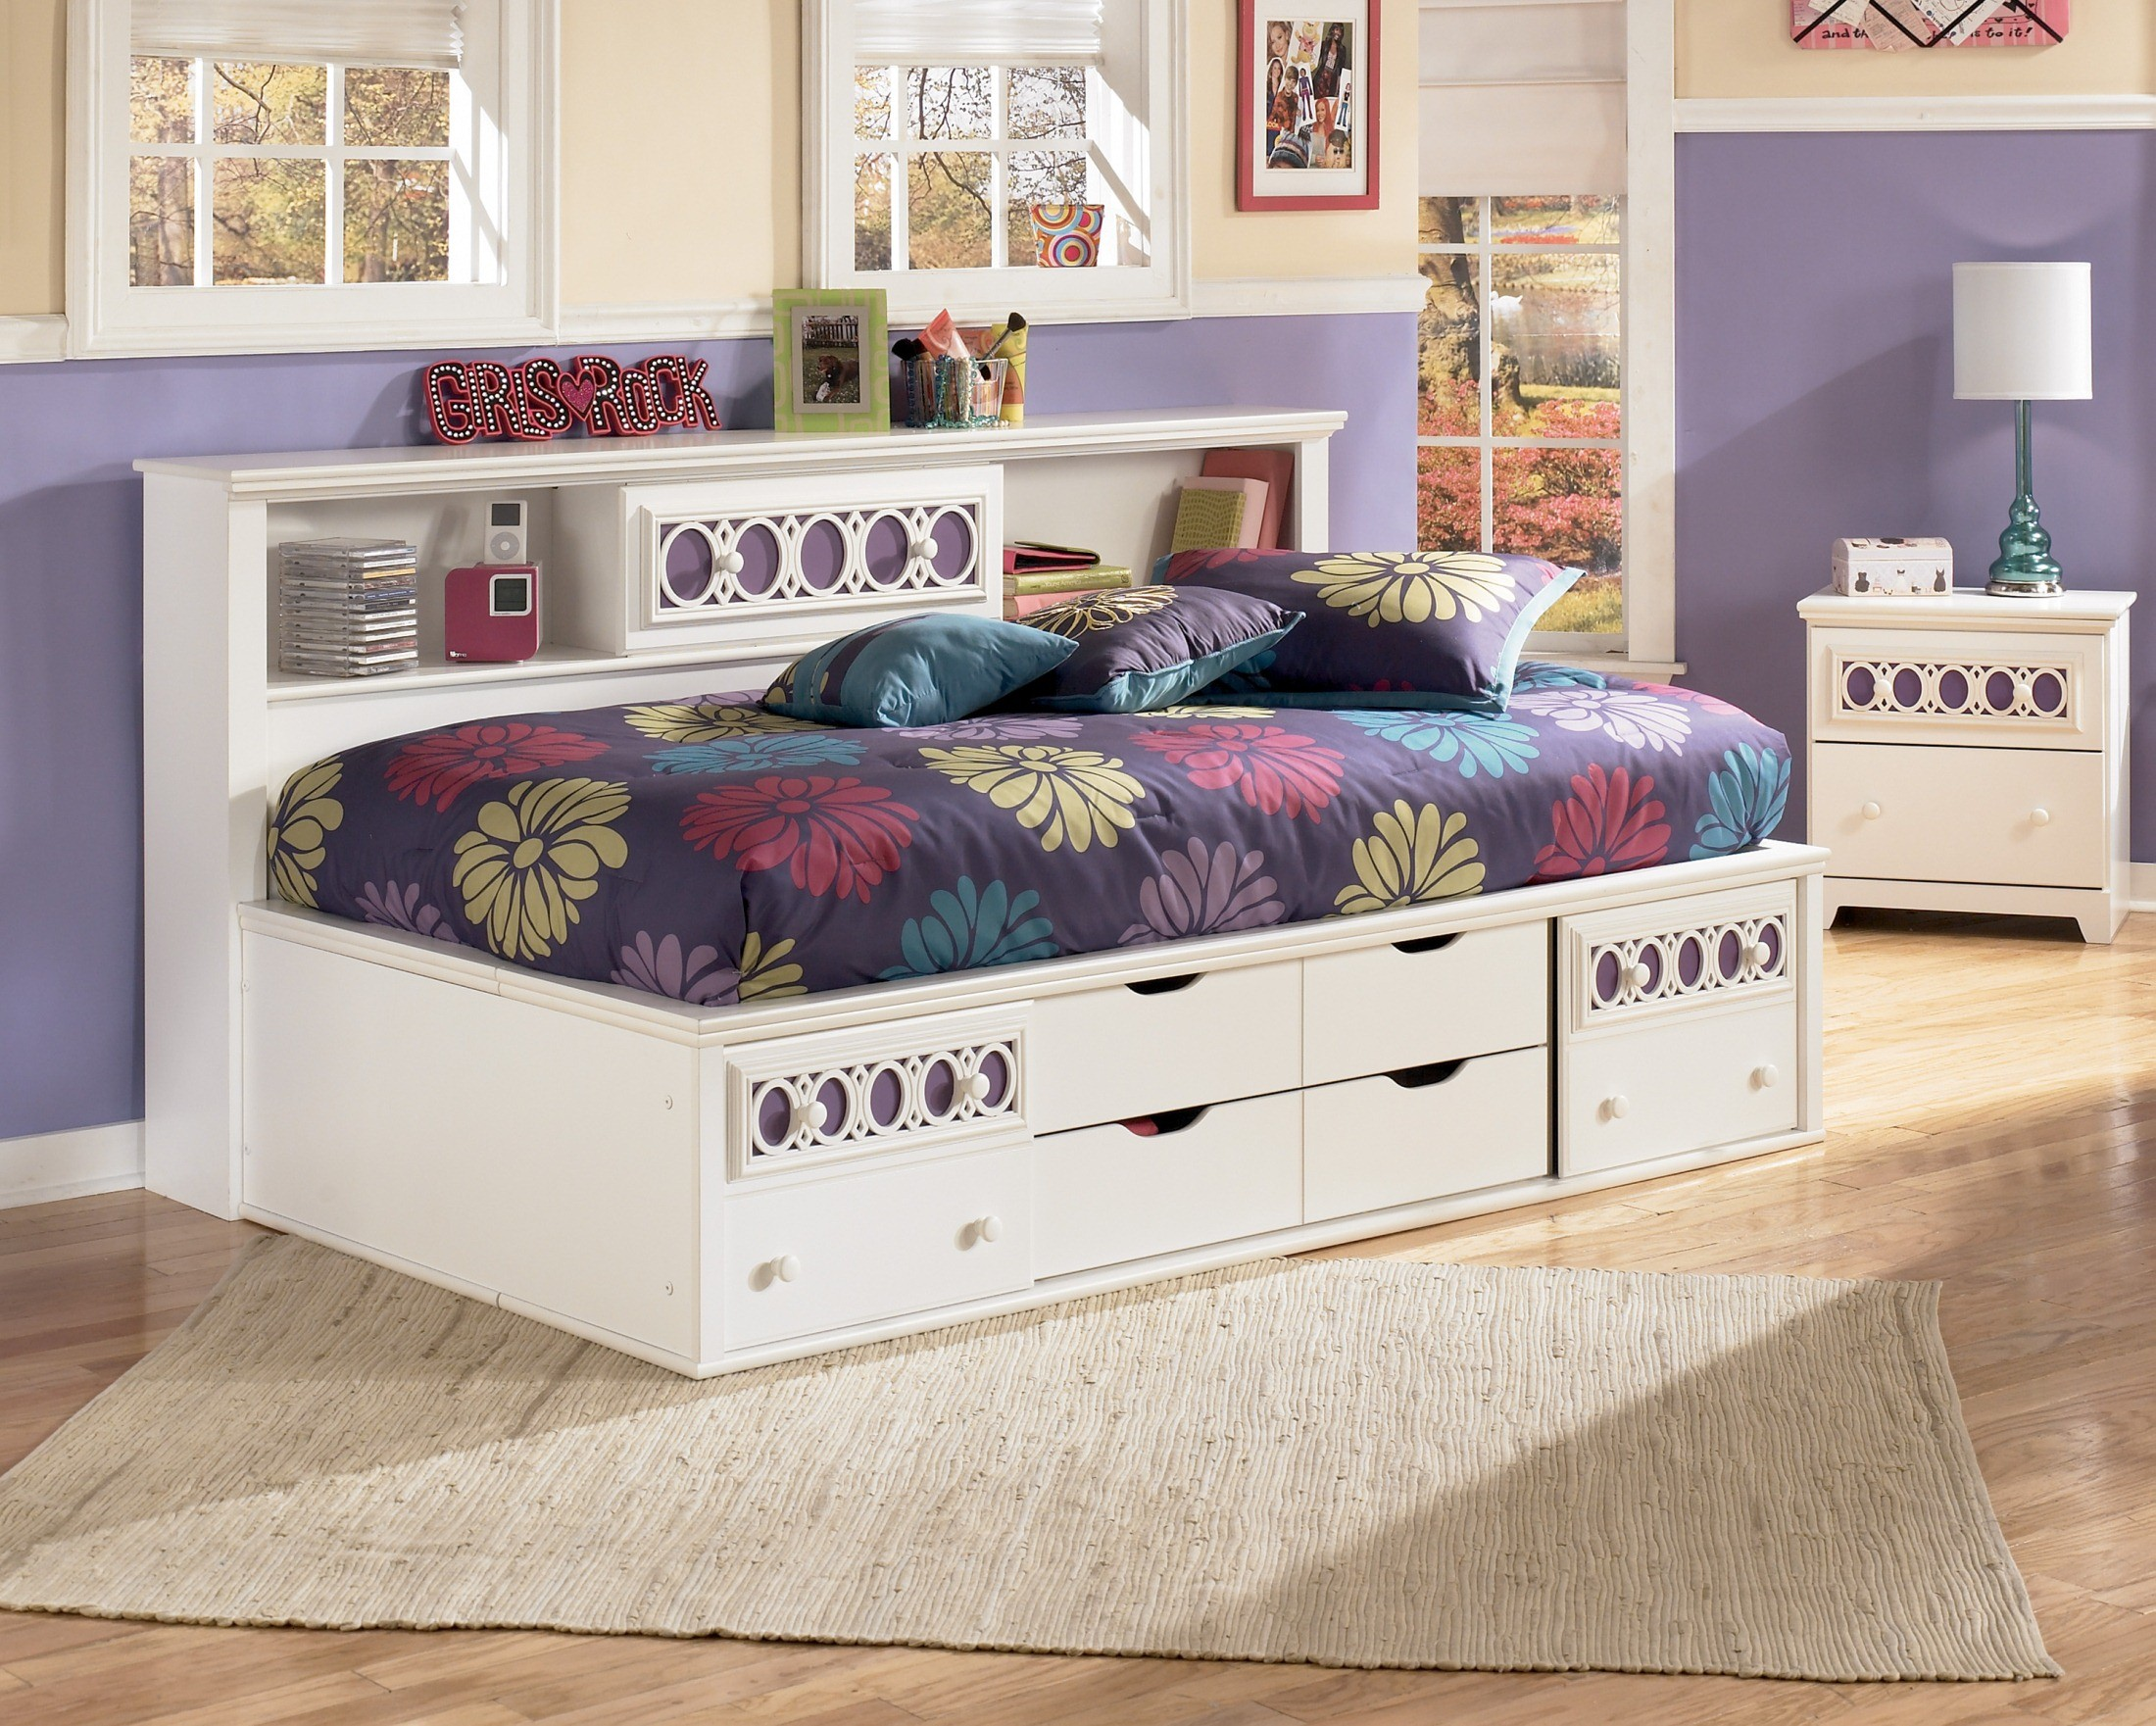 Zayley Twin Bookcase Storage Bed From Ashley B131 85 51 82 Coleman Furniture